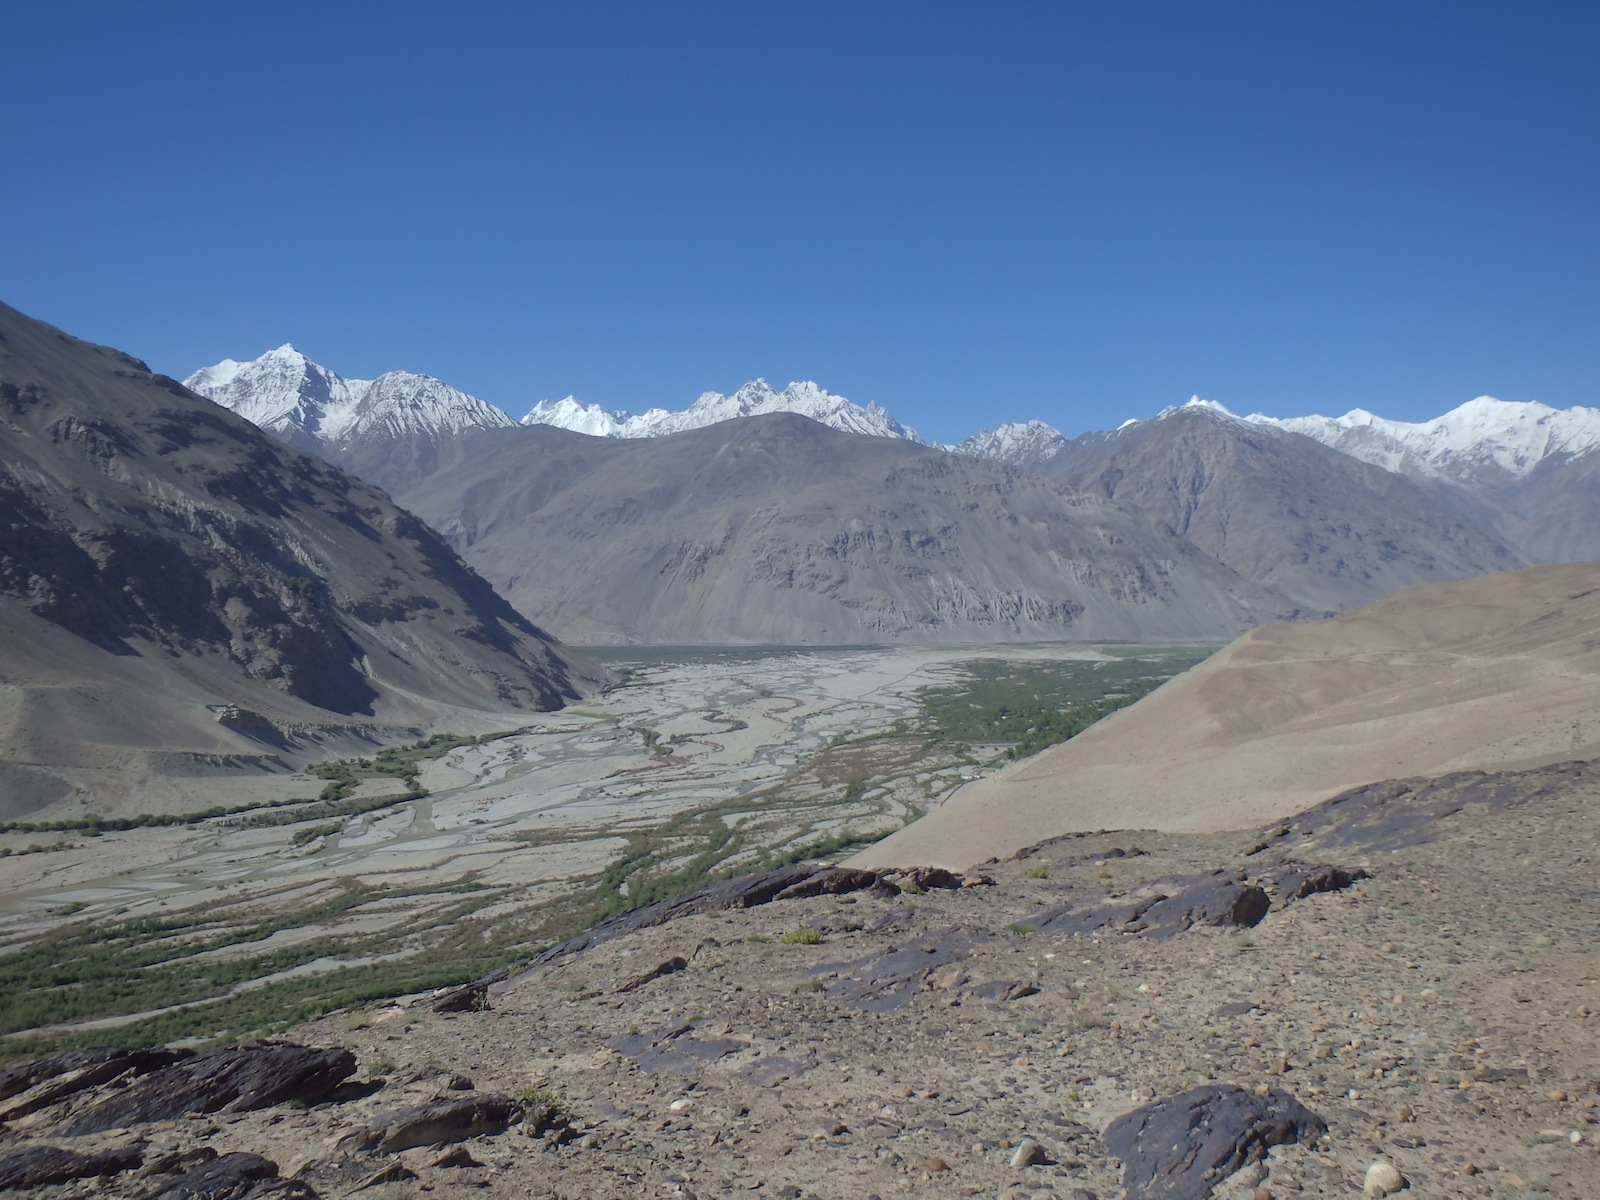 Meeting point of the Pamir and Wakhan rivers (Tajikistan - Wakhan)